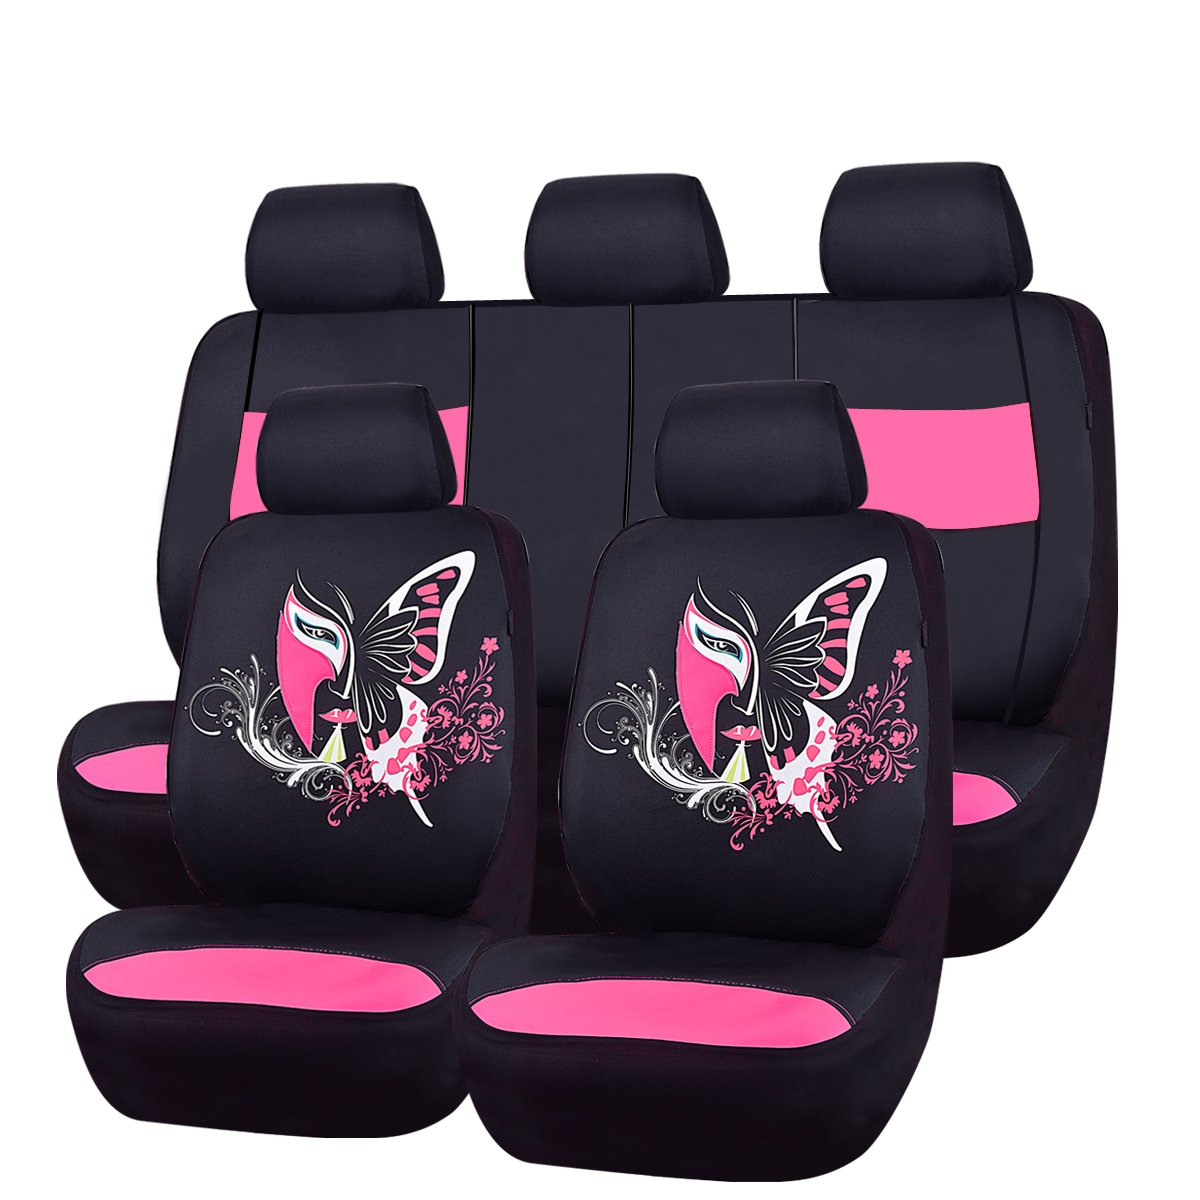 NEW ARRIVAL CAR PASS 11PCS Insparation Universal Seat Covers Set Package Fit For